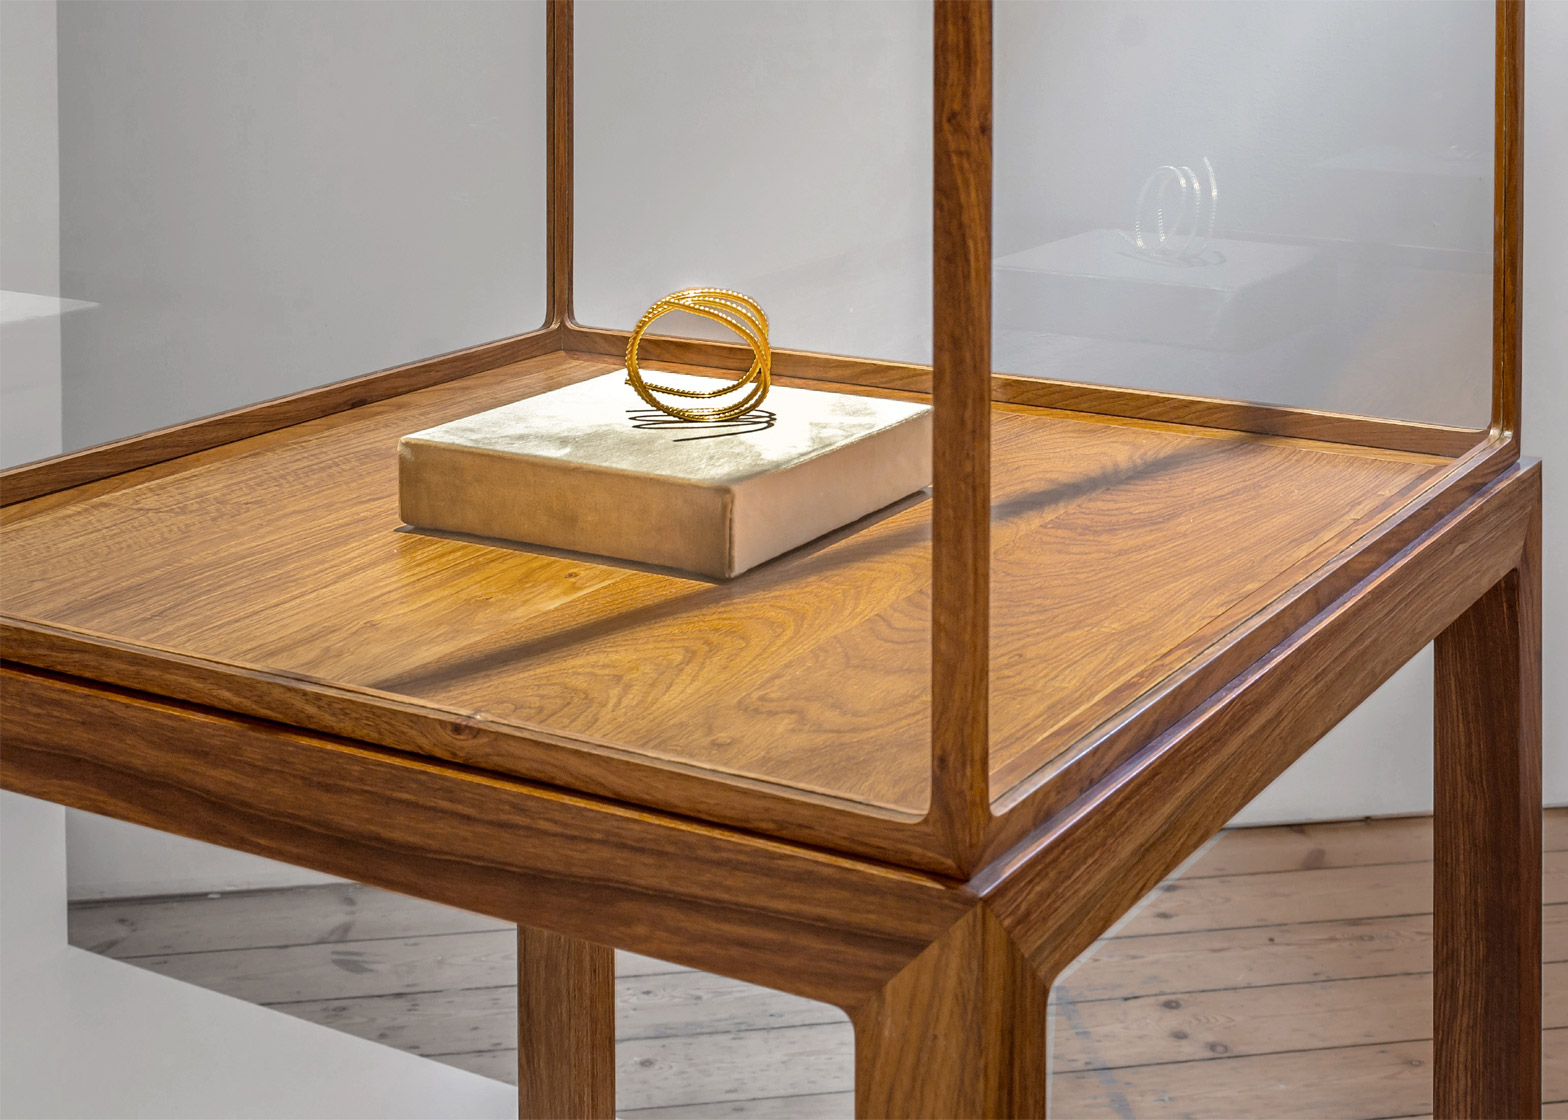 Gold jewellery by Ai Wei Wei at the London jewellery gallery, Elisabetta Cipriani